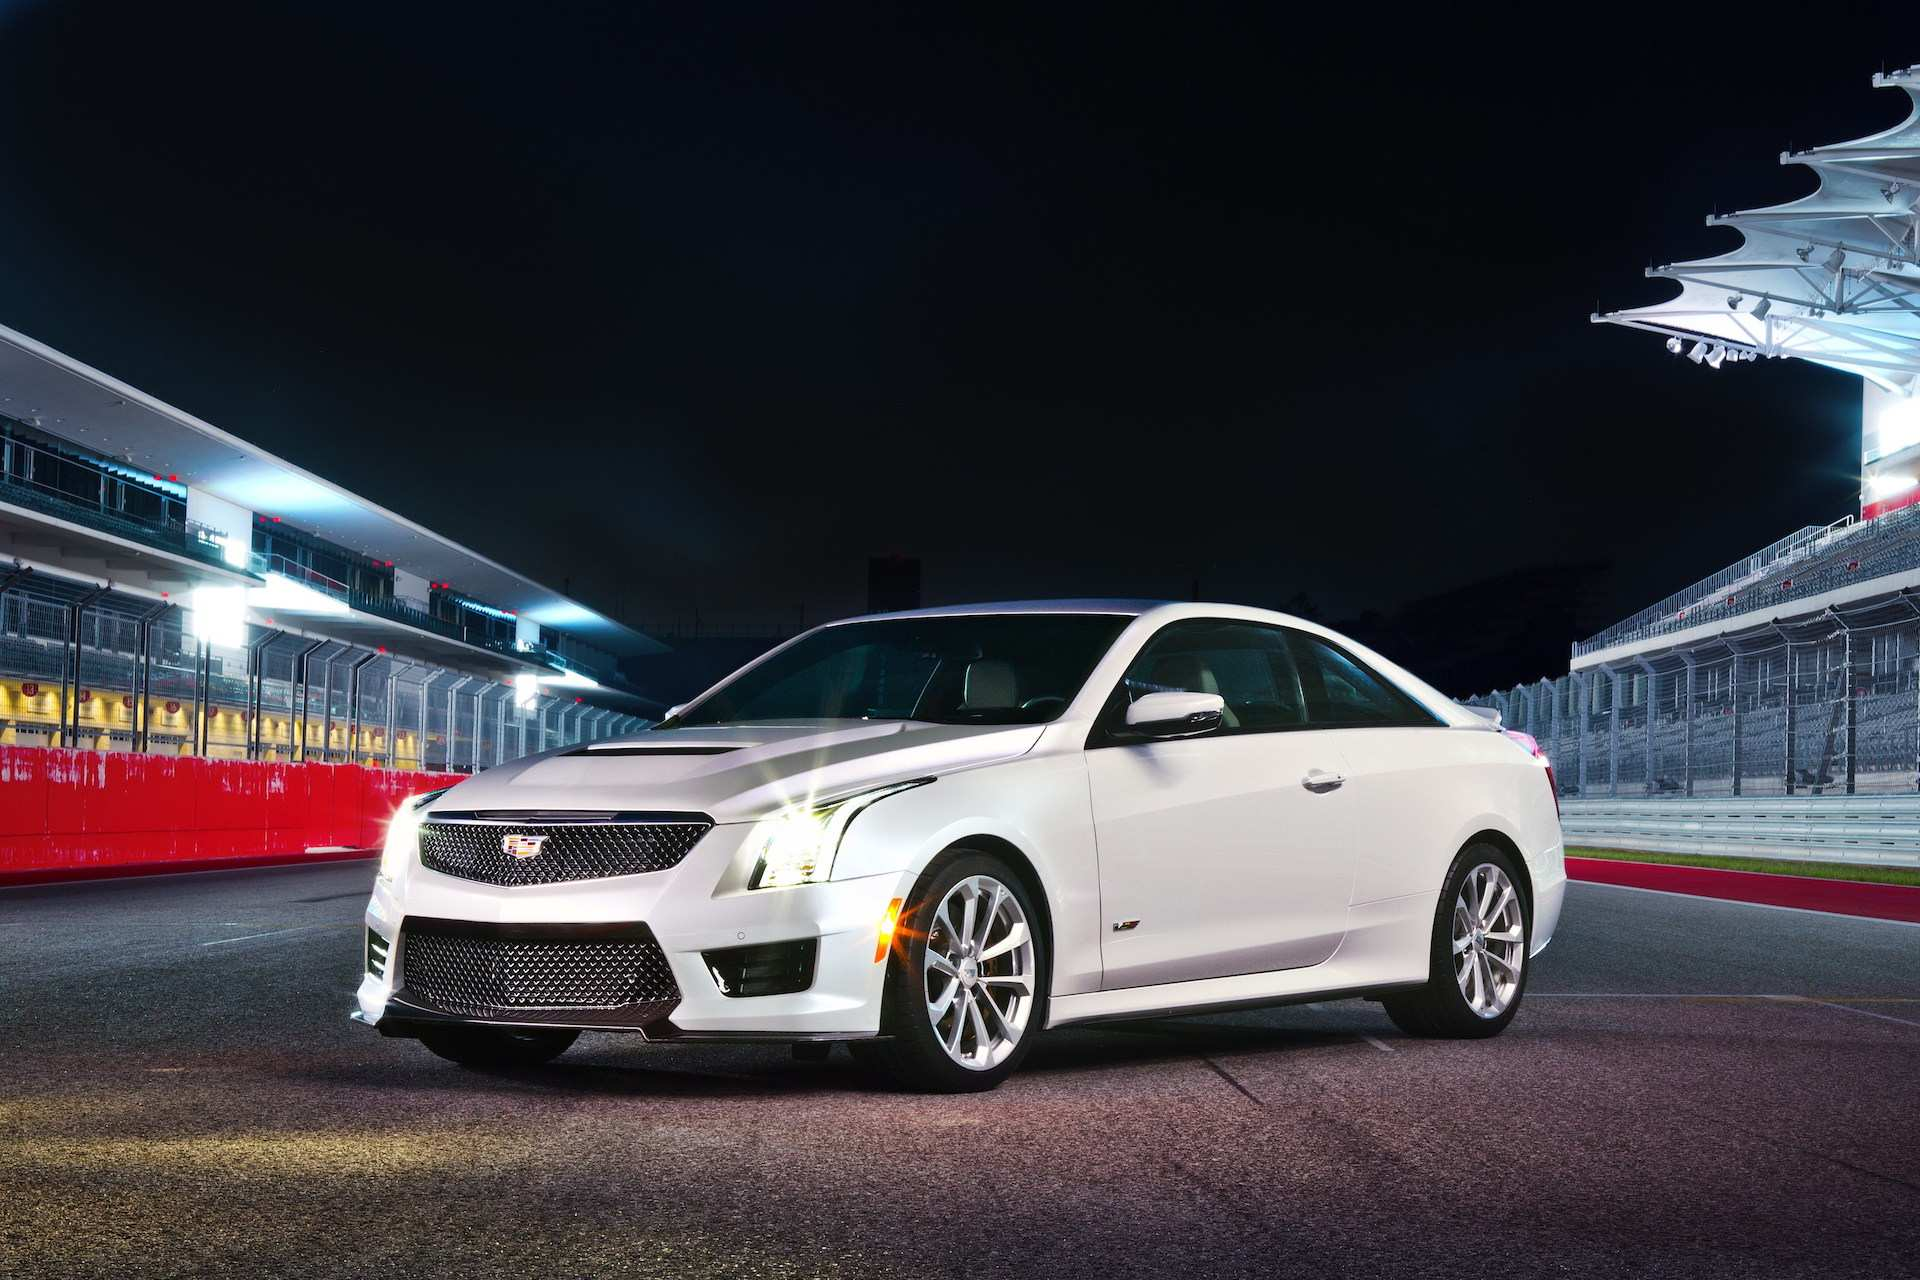 89 Great 2019 Cadillac Ats Coupe Specs for 2019 Cadillac Ats Coupe